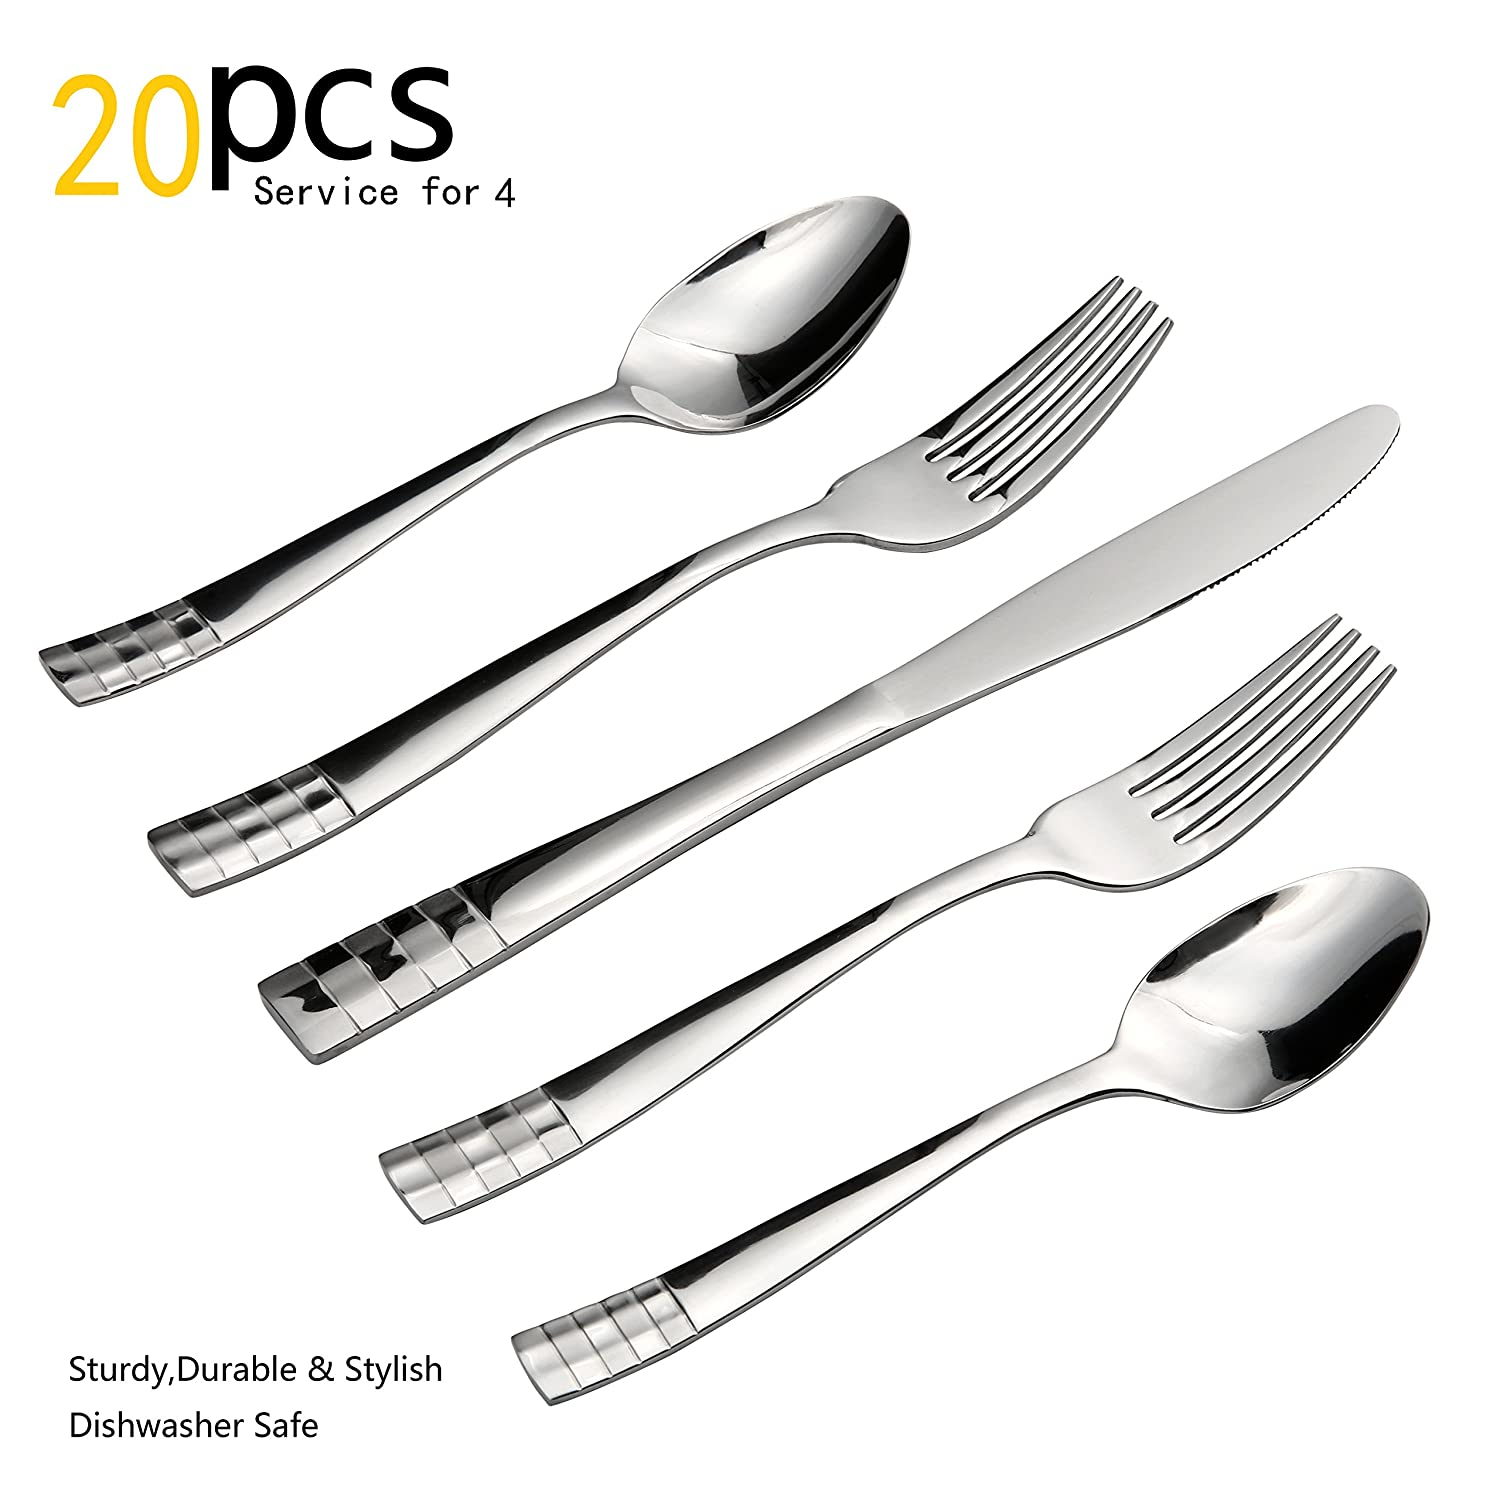 Silverware Set, 20 Pieces Flatware Set With Fork, Knife And Spoon, Service For 4 By Kitchentrend by Kitchentrend